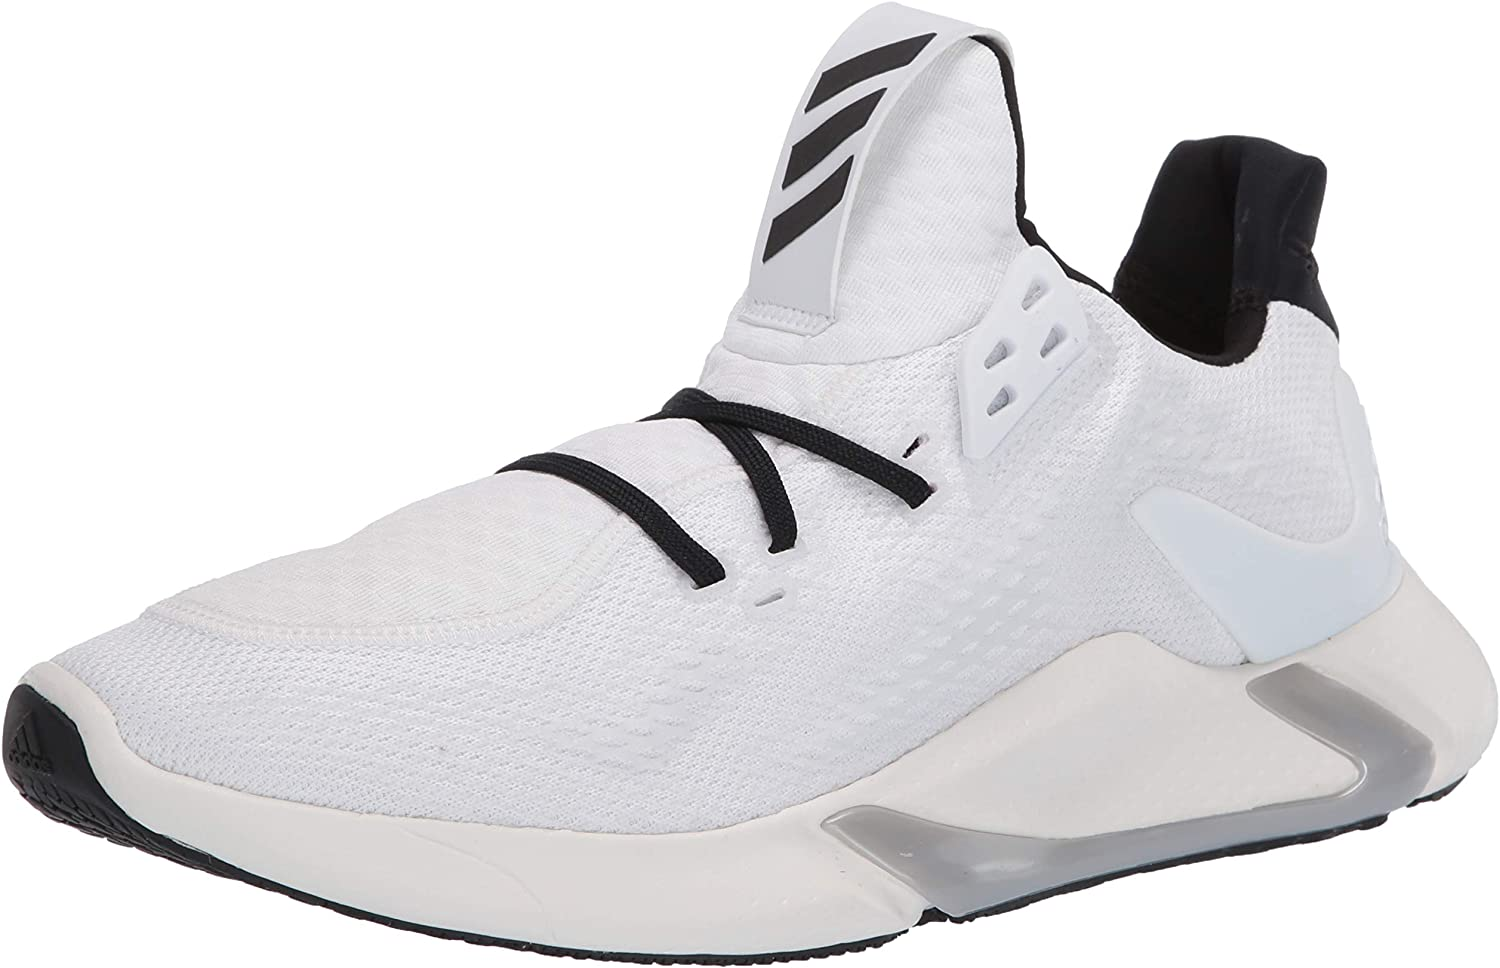 Men's Adidas Edge Lux